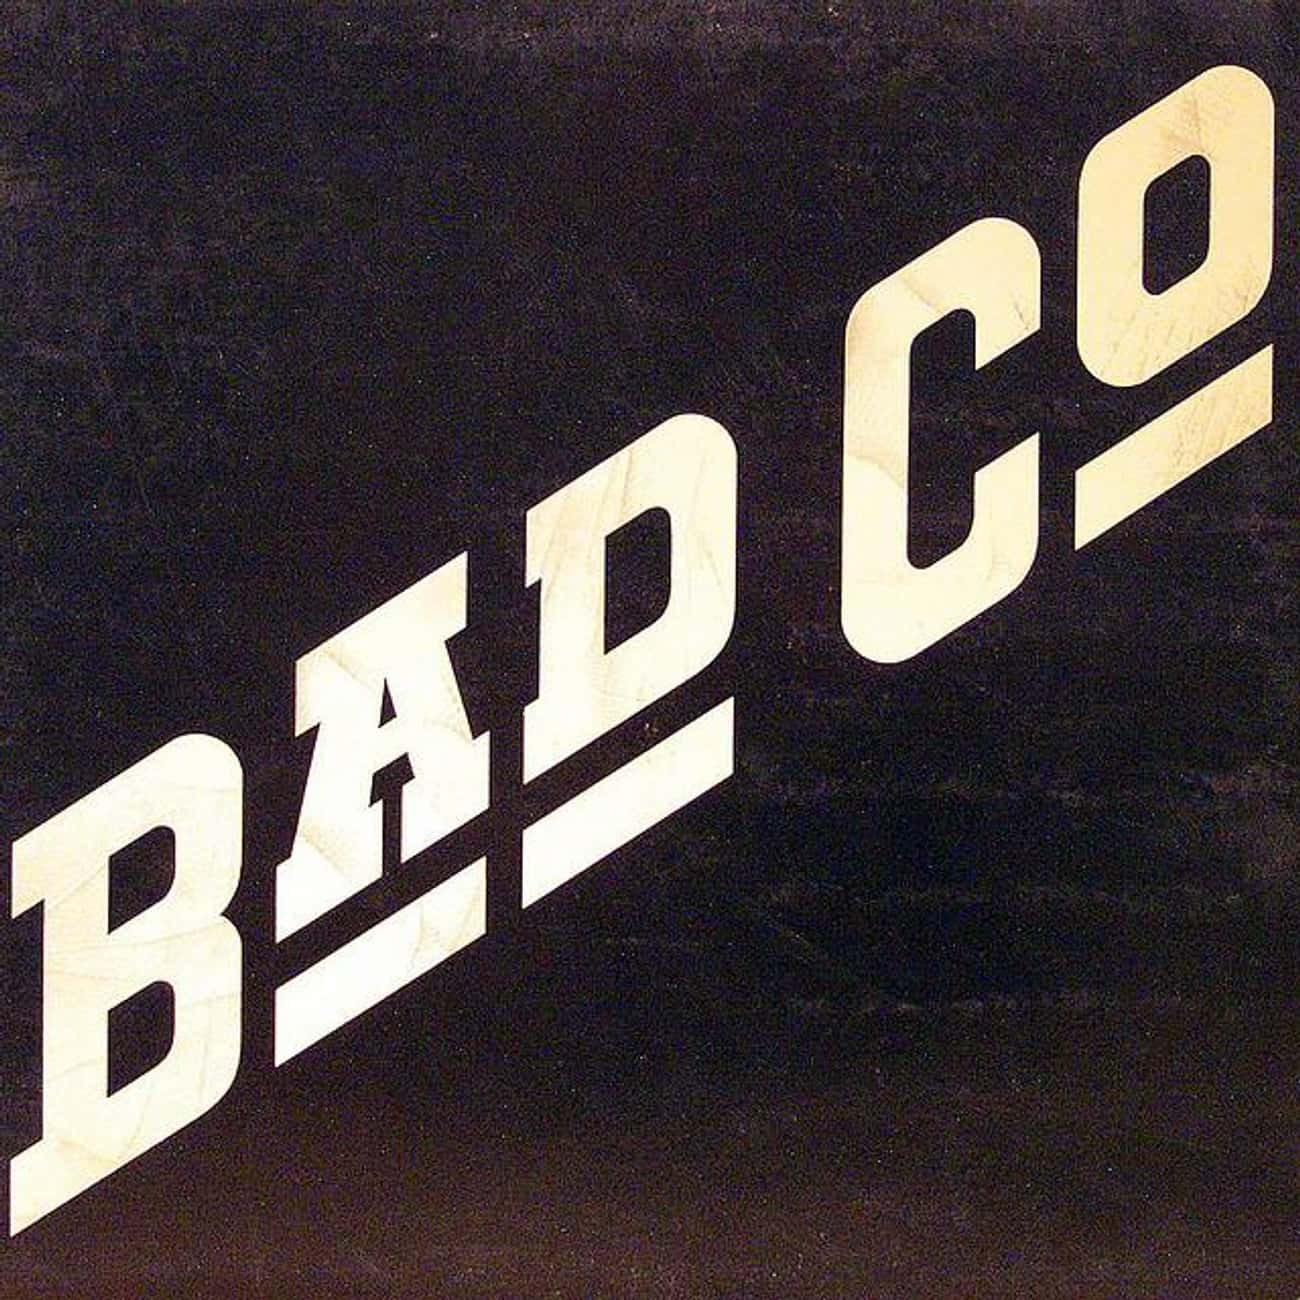 Bad Company is listed (or ranked) 1 on the list The Best Bad Company Albums of All Time